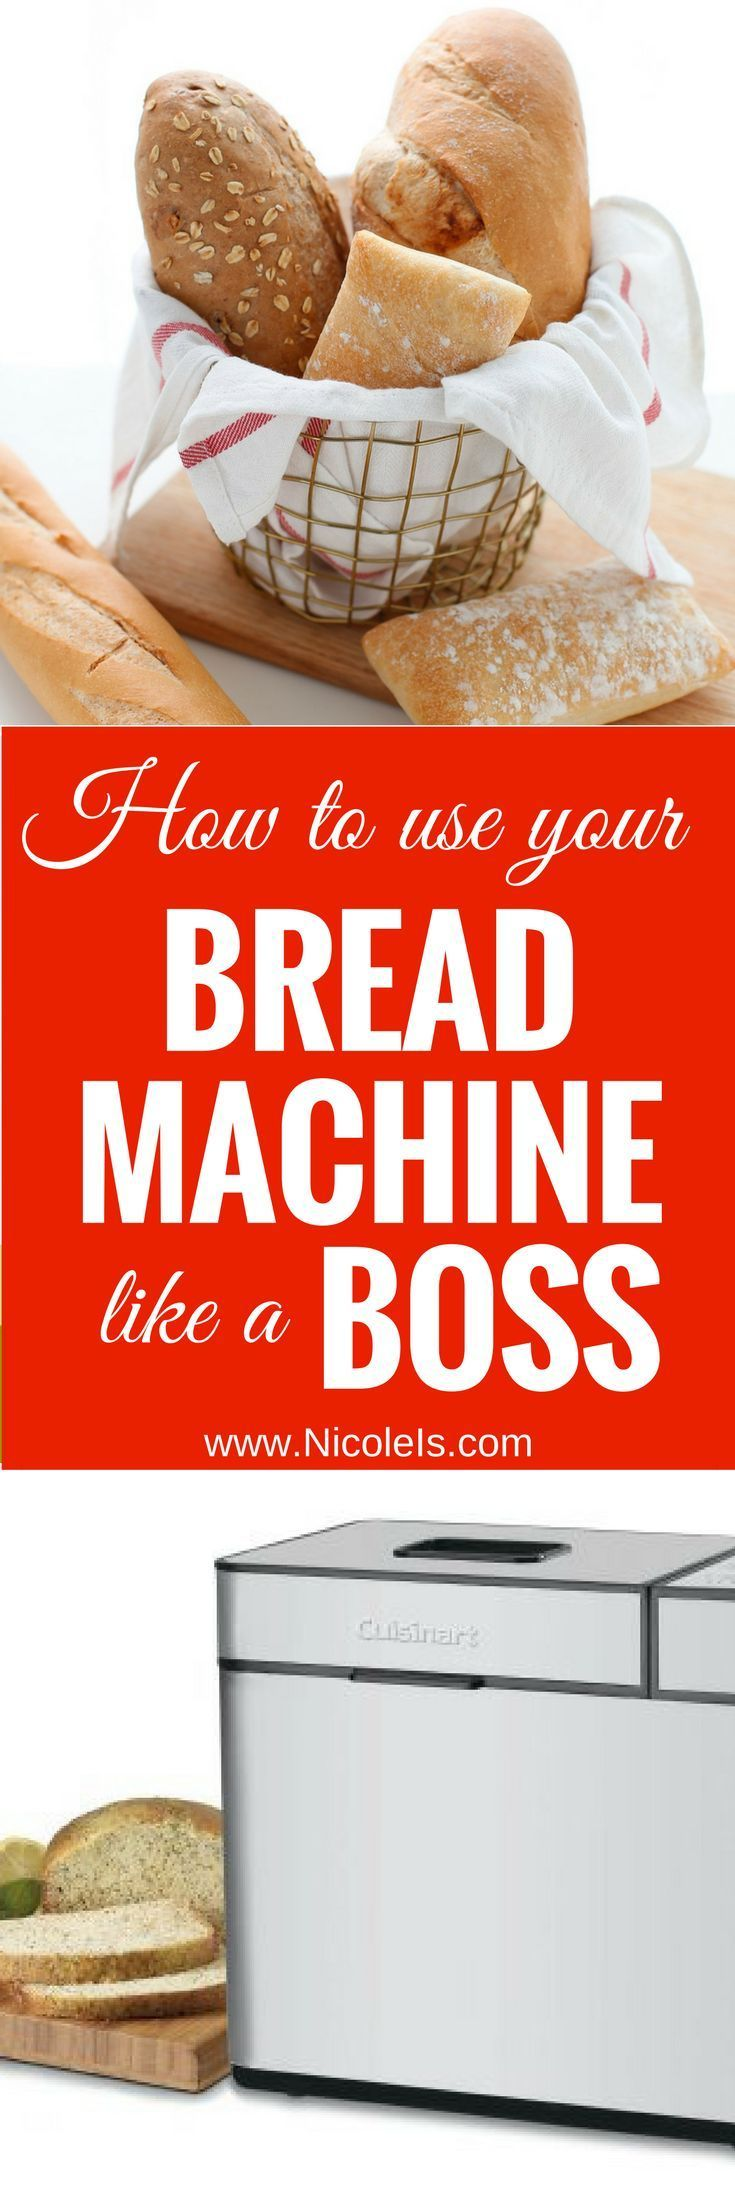 How to use your Bread Machine like a Boss... or a Baker! Bread Recipes | Bread Maker | Bread Machine | Bread Maker Recipe | Bread Machine Recipe | Baking | Pizza Dough | Homemade Bread | No Knead Bread | Easy Bread Recipes | www.NicoleIs.com